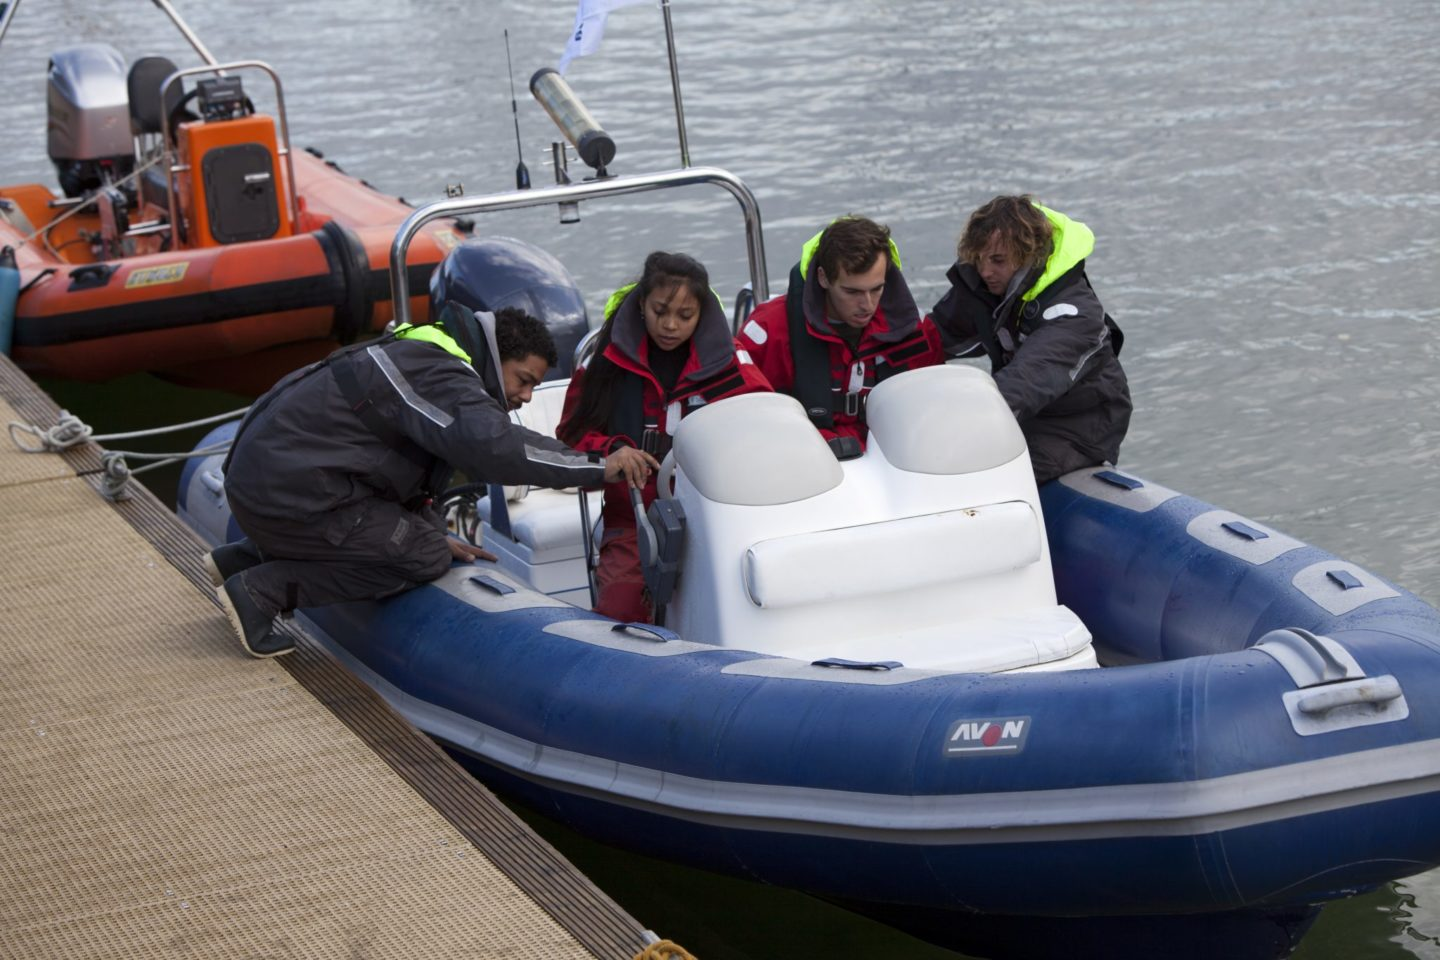 Crew sitting in a small powerboat during their level 2 training to work on yachts